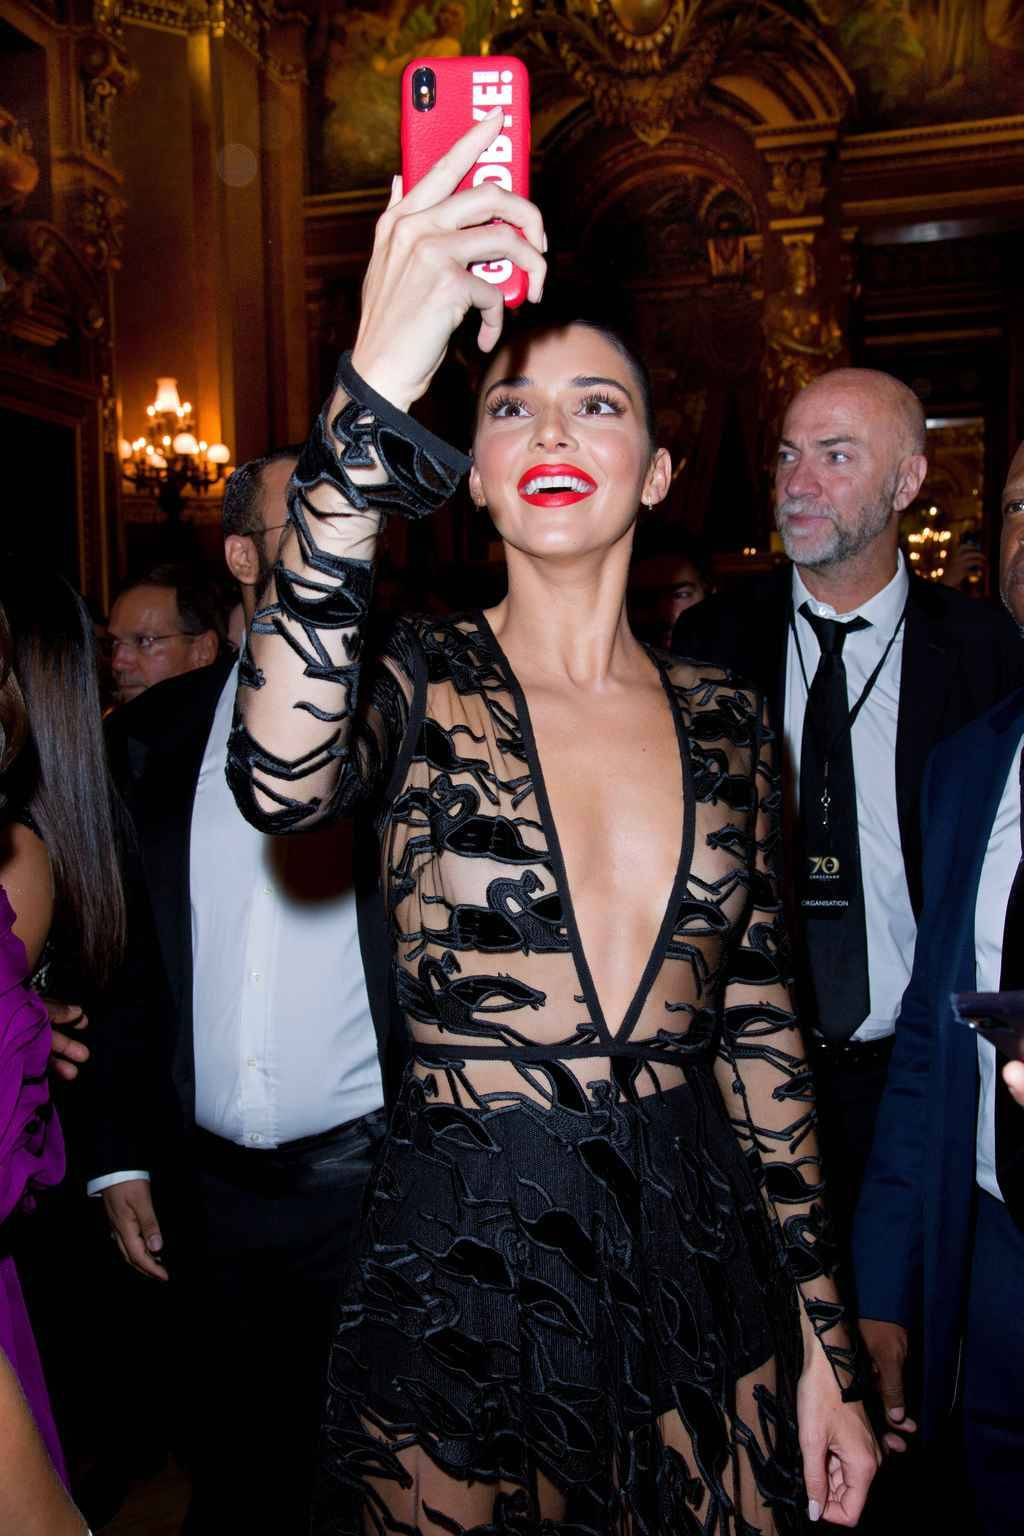 Mandatory Credit: Photo by Dominique Maitre/WWD/REX/Shutterstock (9879704o) Kendall Jenner Longchamp 70th Anniversary Celebration, Opera Garnier, Paris, France - 11 Sep 2018